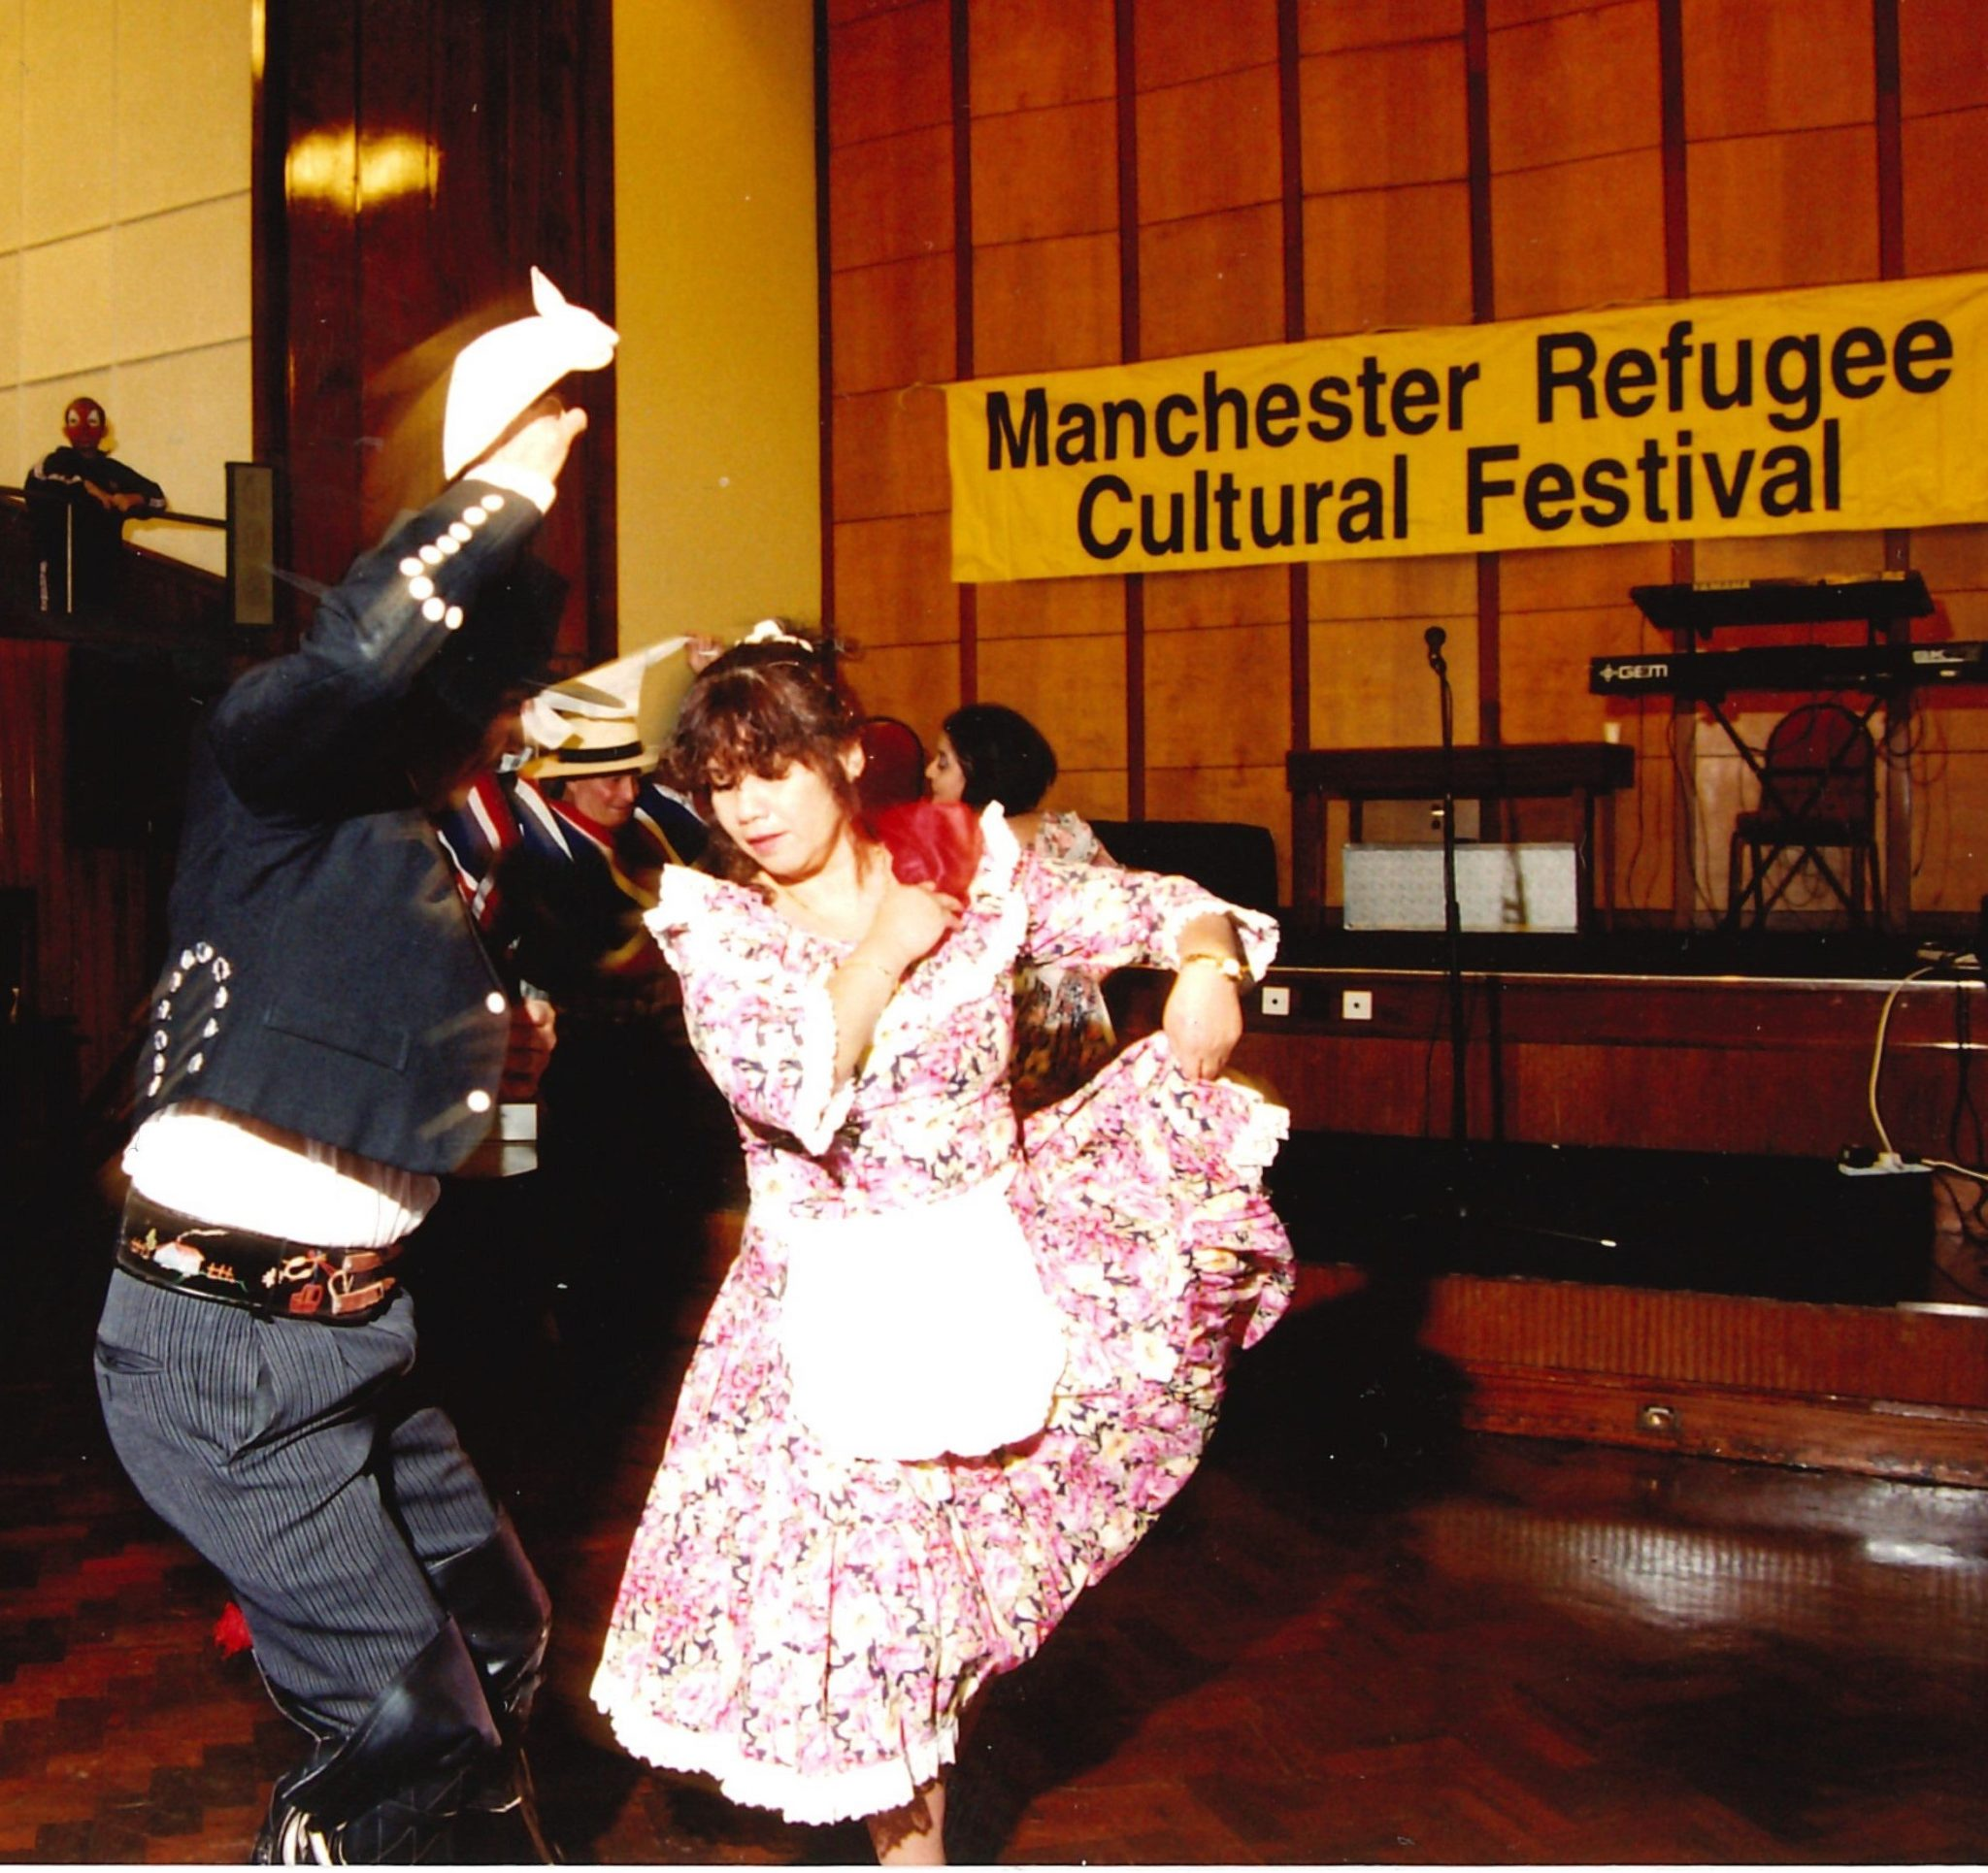 Man and woman dancing in foreground, background sign reading Manchester Refugee Cultural Festival